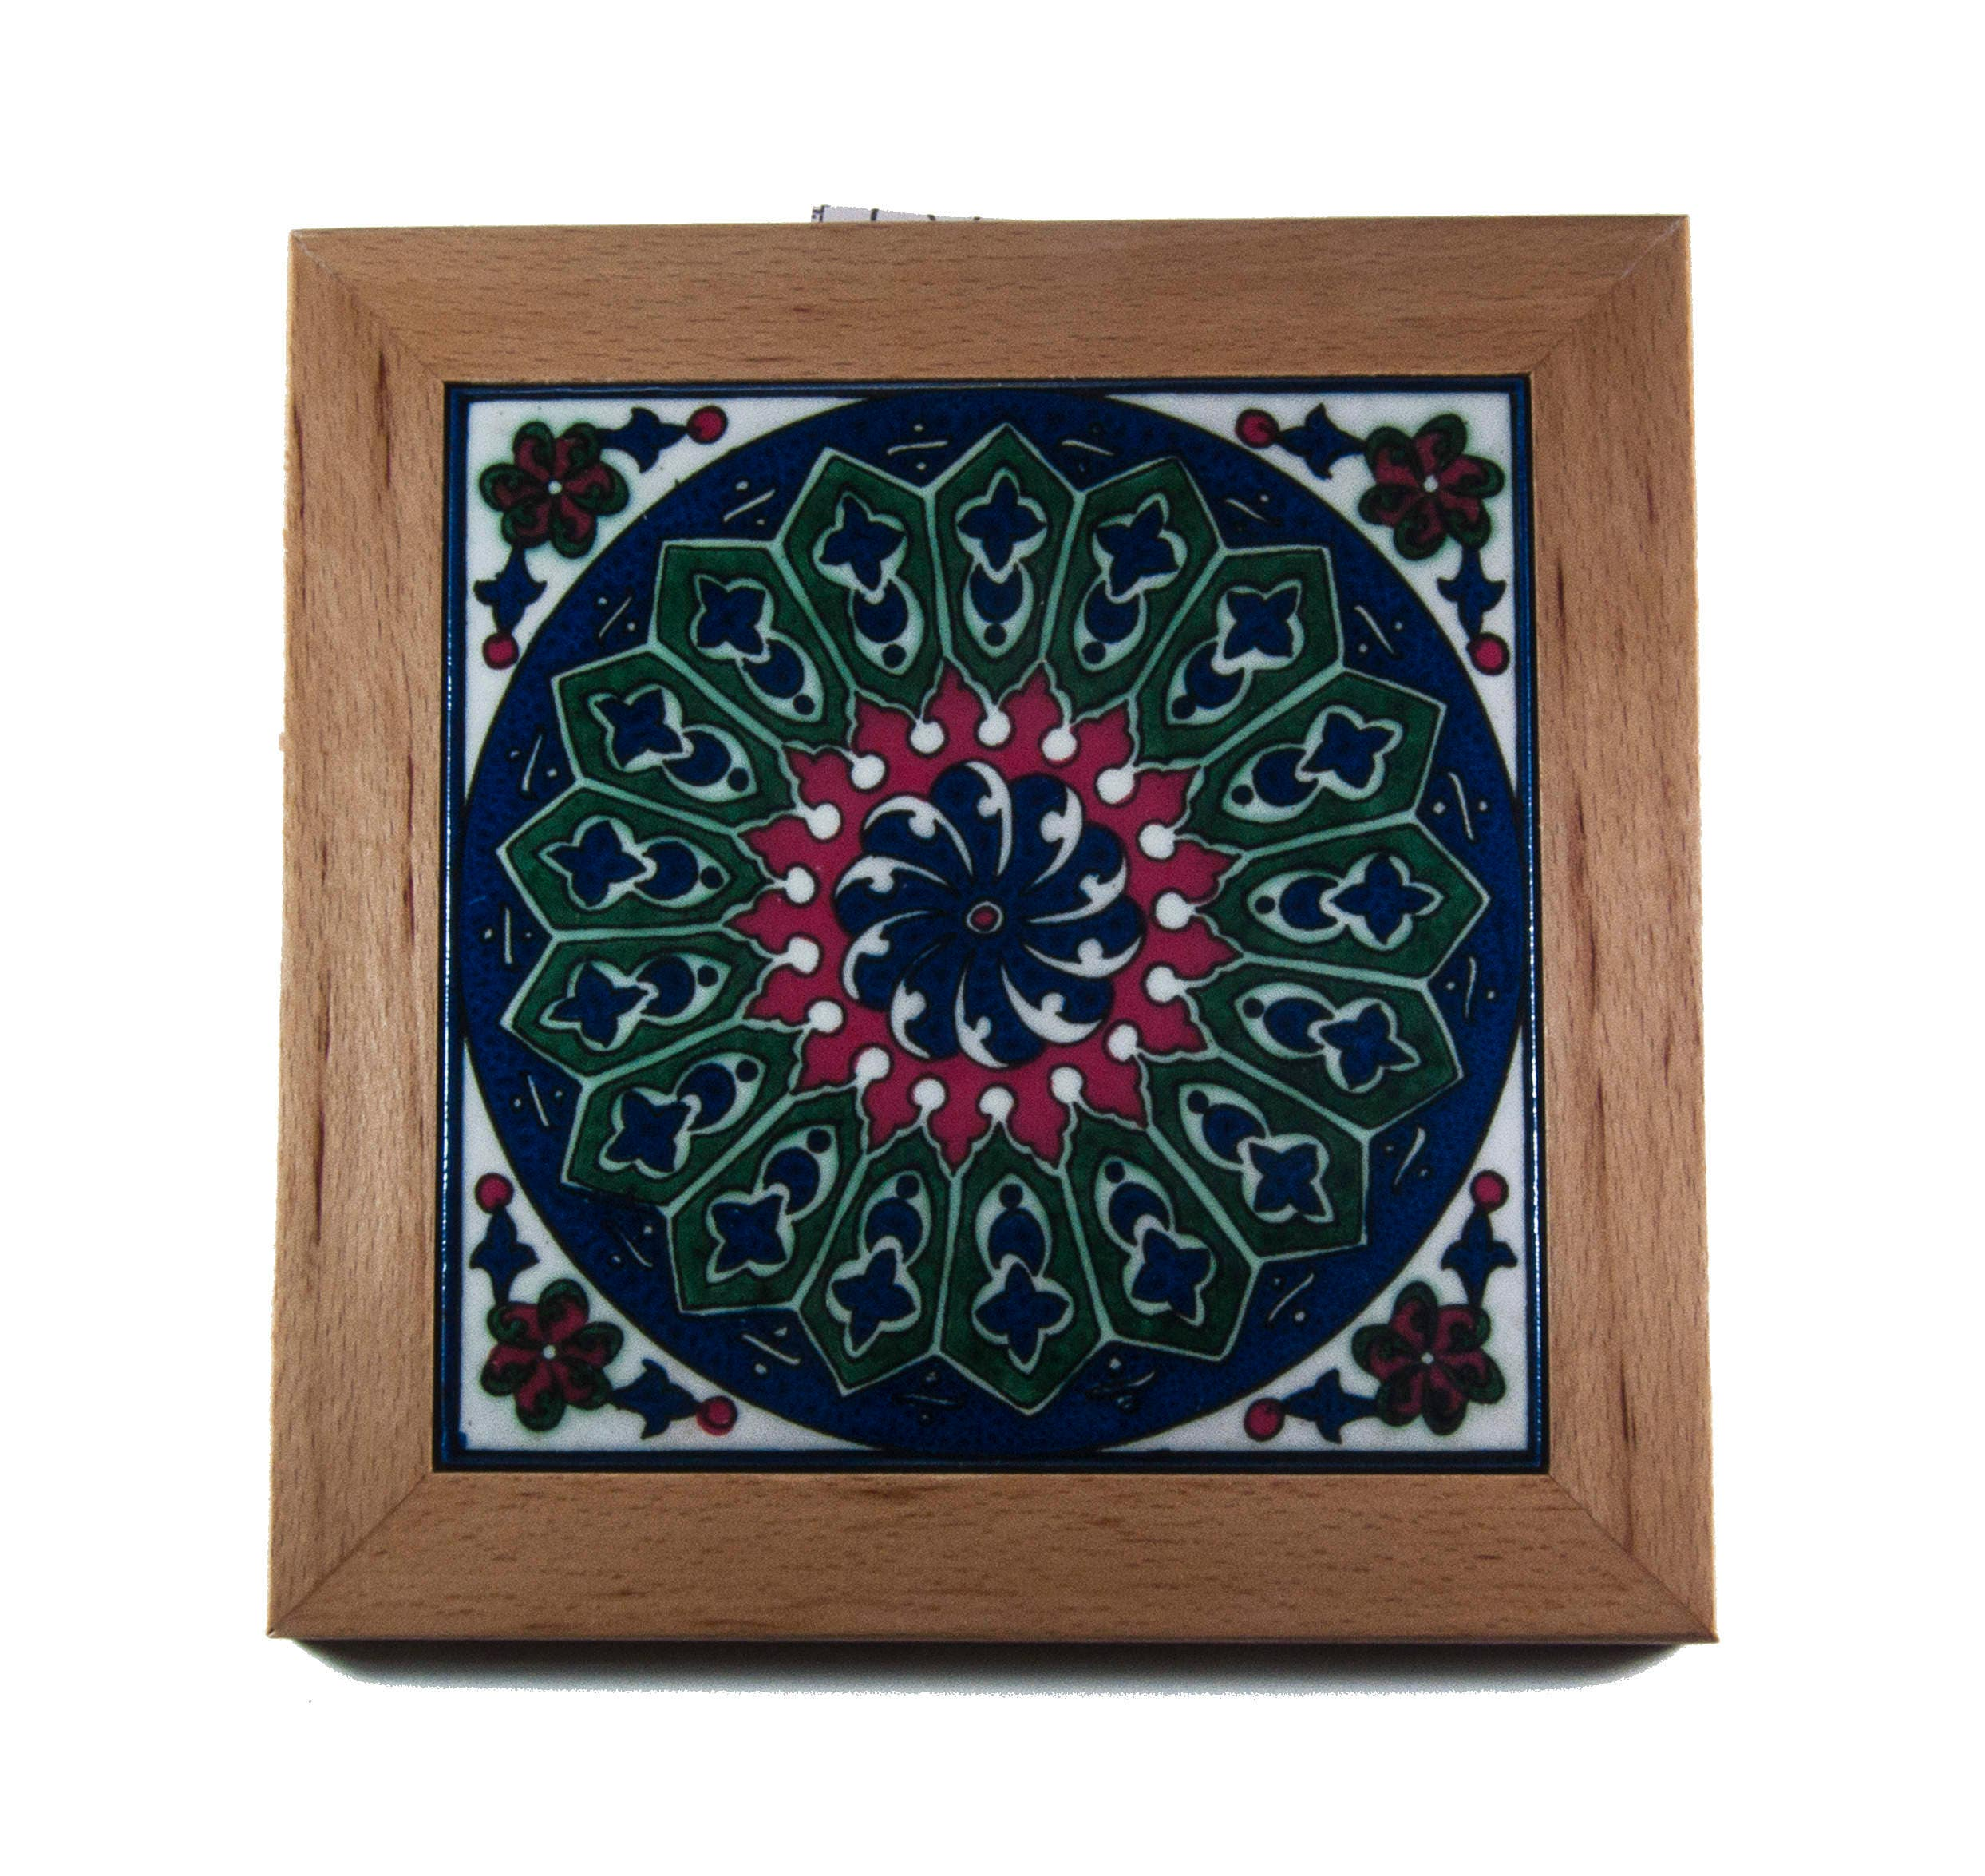 Armenian ceramic tile israel jerusalem home handpainted gift description armenian ceramic vintage pottery tile dailygadgetfo Images